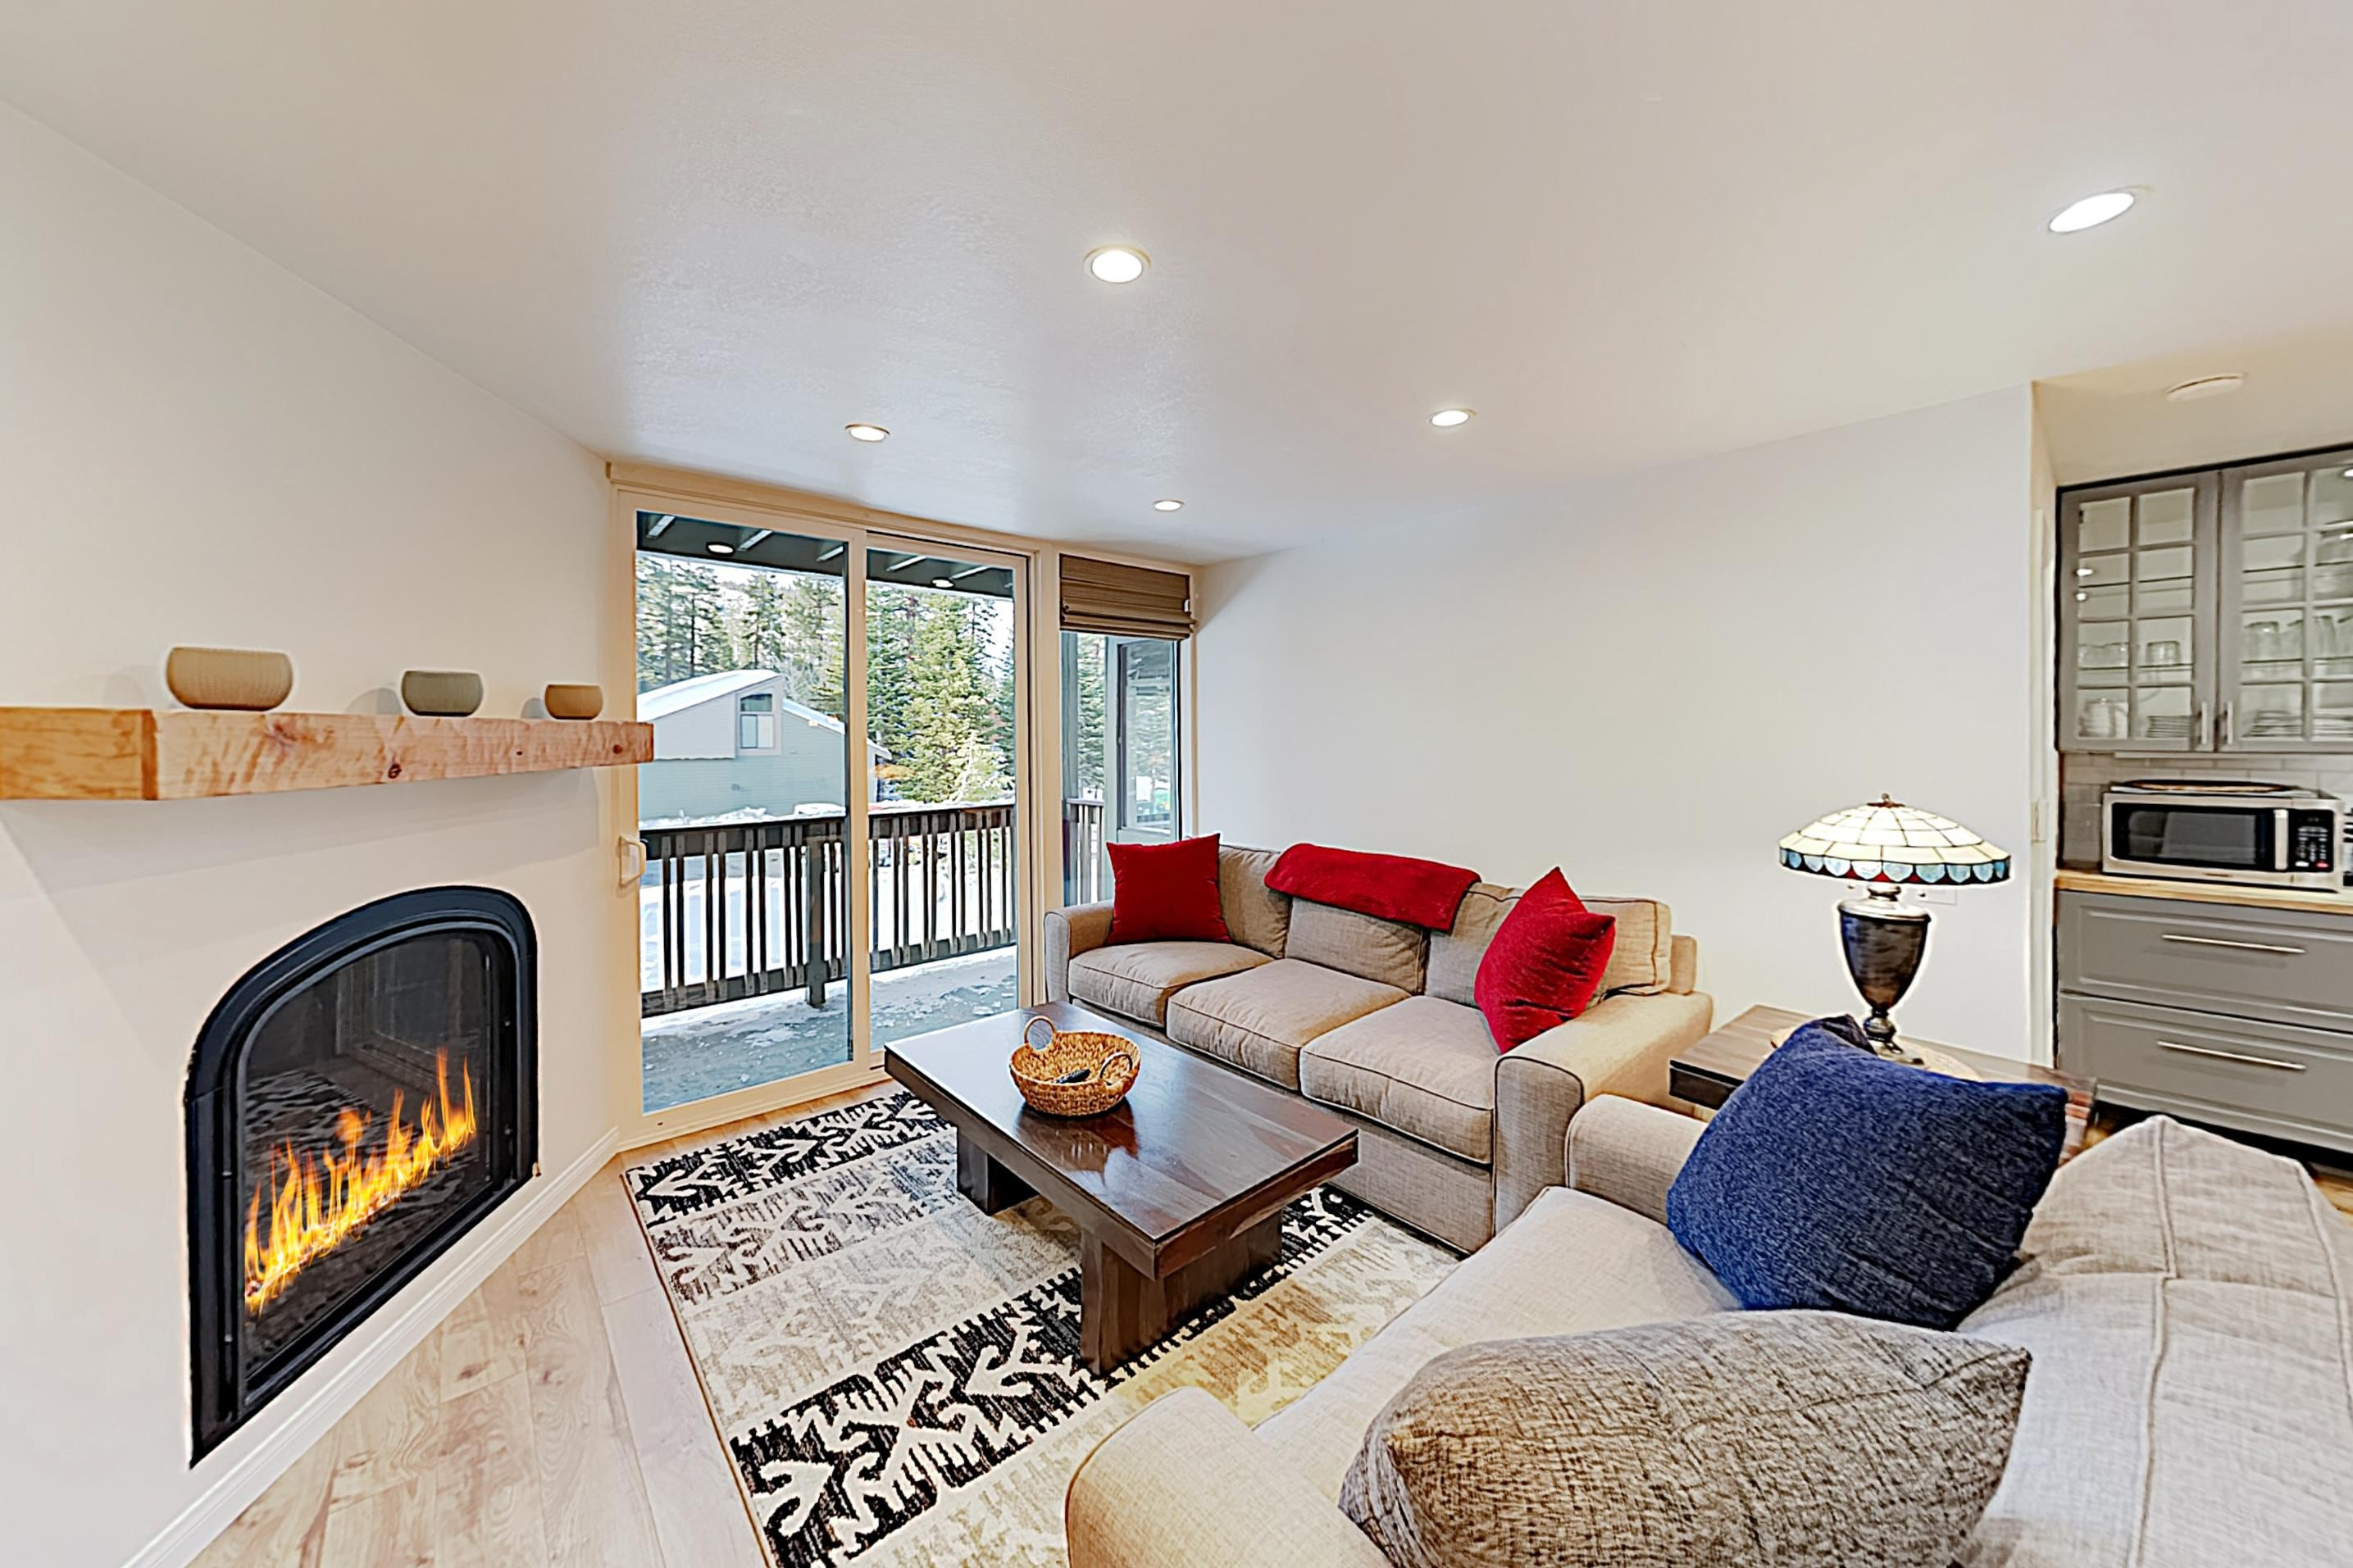 Welcome to Mammoth Lakes! This condo is professionally managed by TurnKey Vacation Rentals.